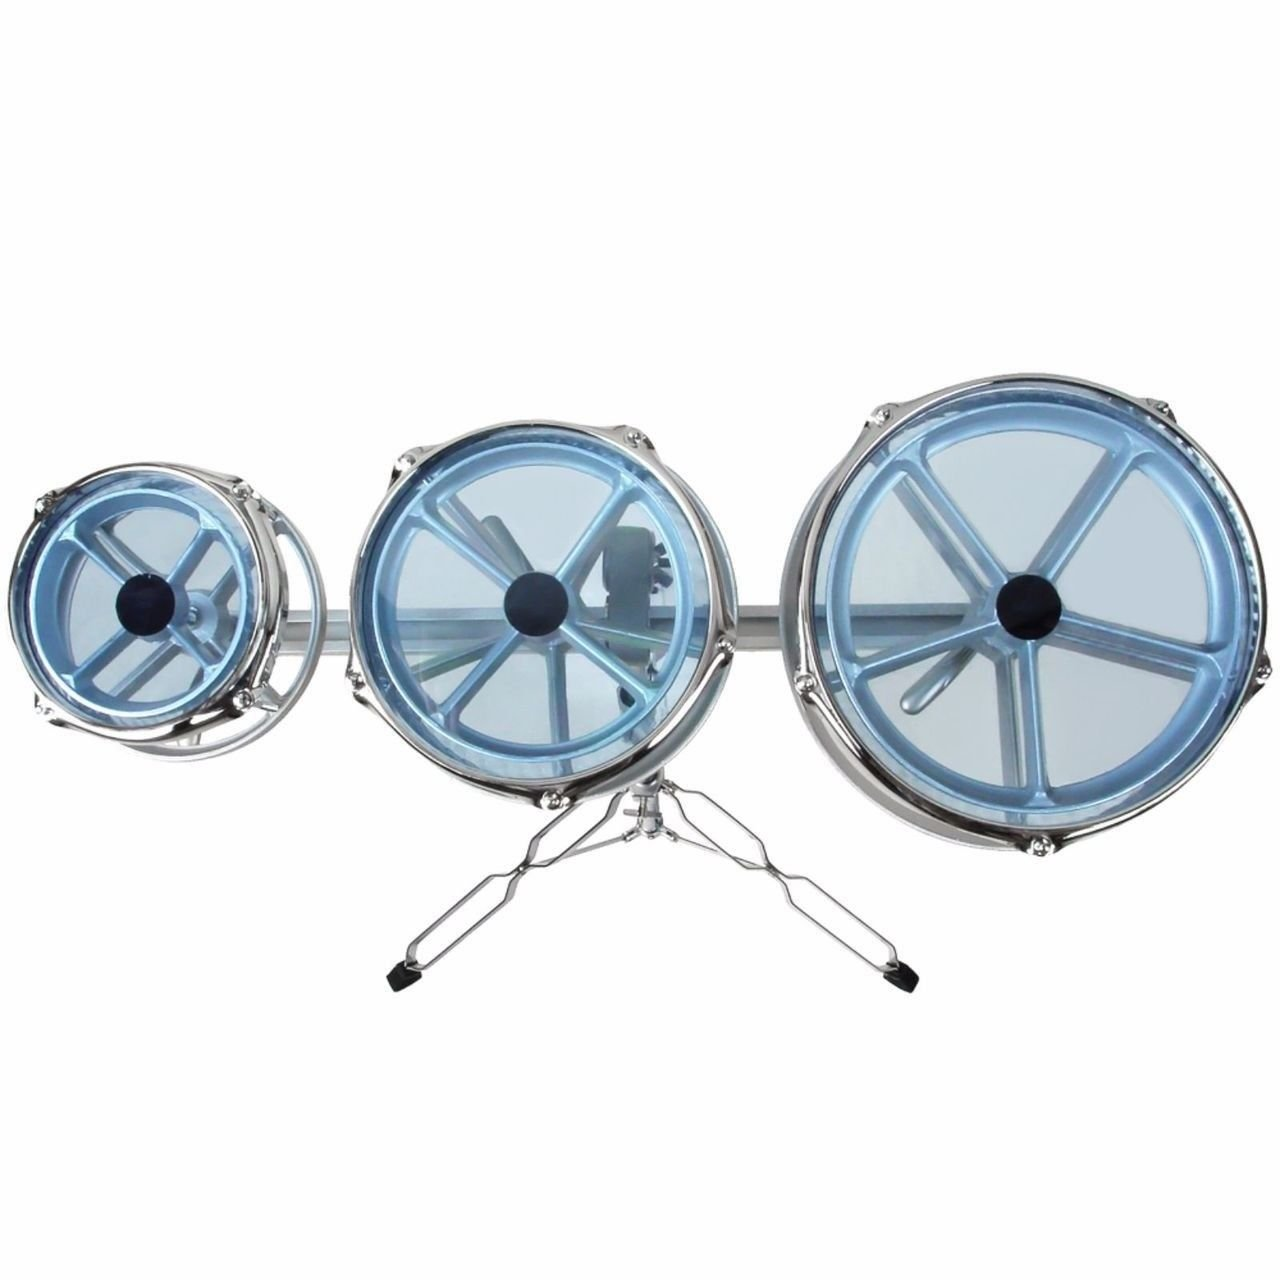 GP Percussion RT68 Tunable Roto Tom Drum Set with Adjustable Double Braced Floor Stand, Adjustable Track, Plated Counterhoop, Drum Key, and Drumsticks - Quick Pitch Shift Drums by WJM (Image #2)